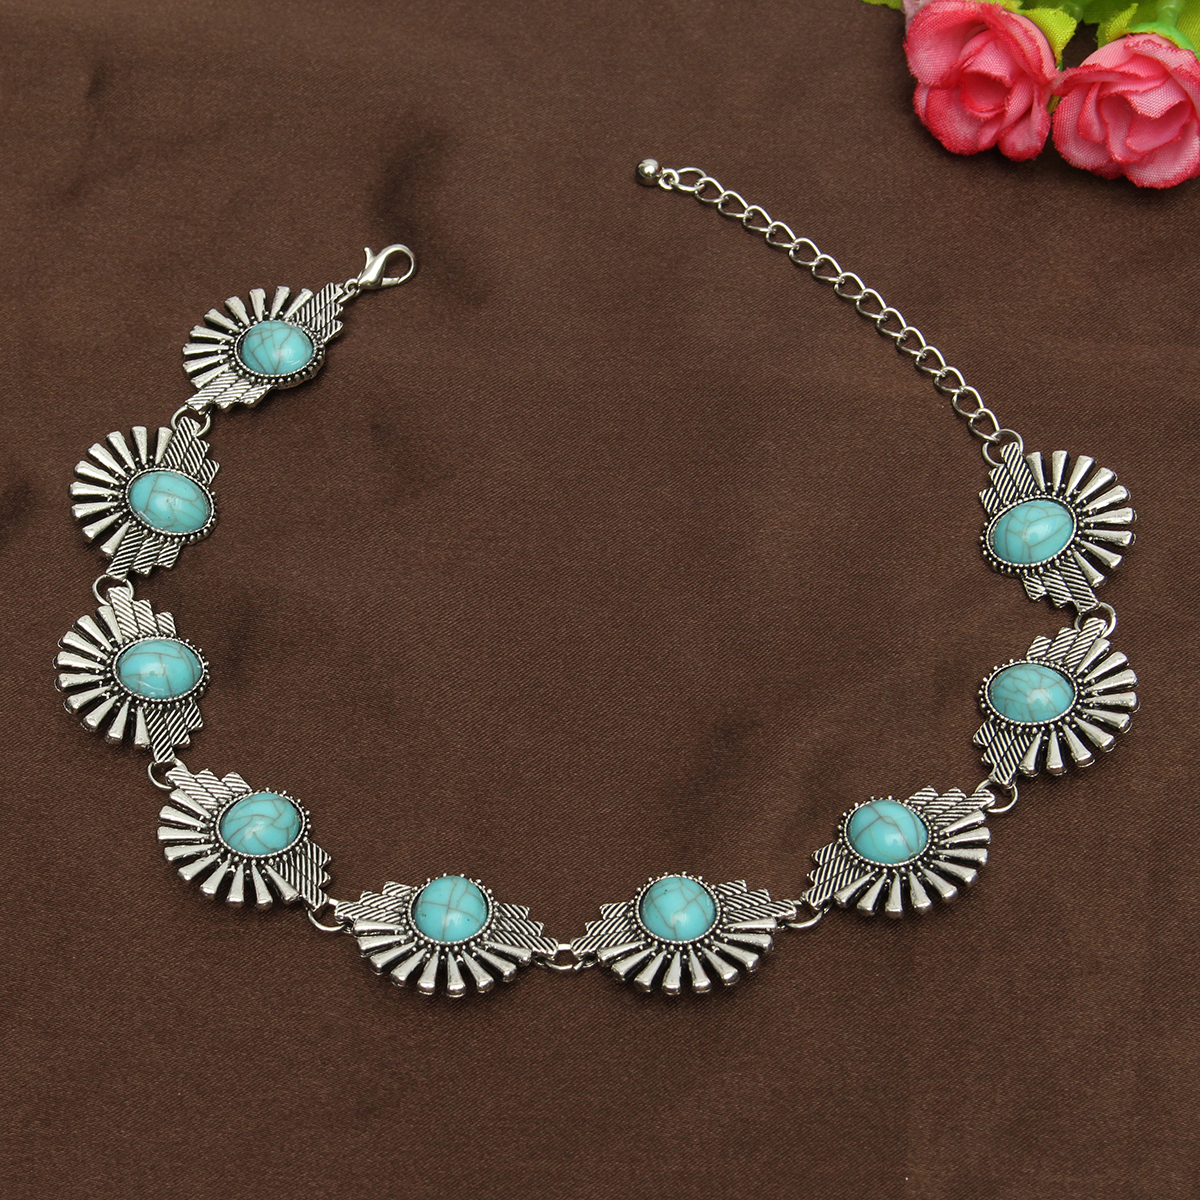 Bohemian Silver Turquoise Beads Collar Choker Necklaces For Women